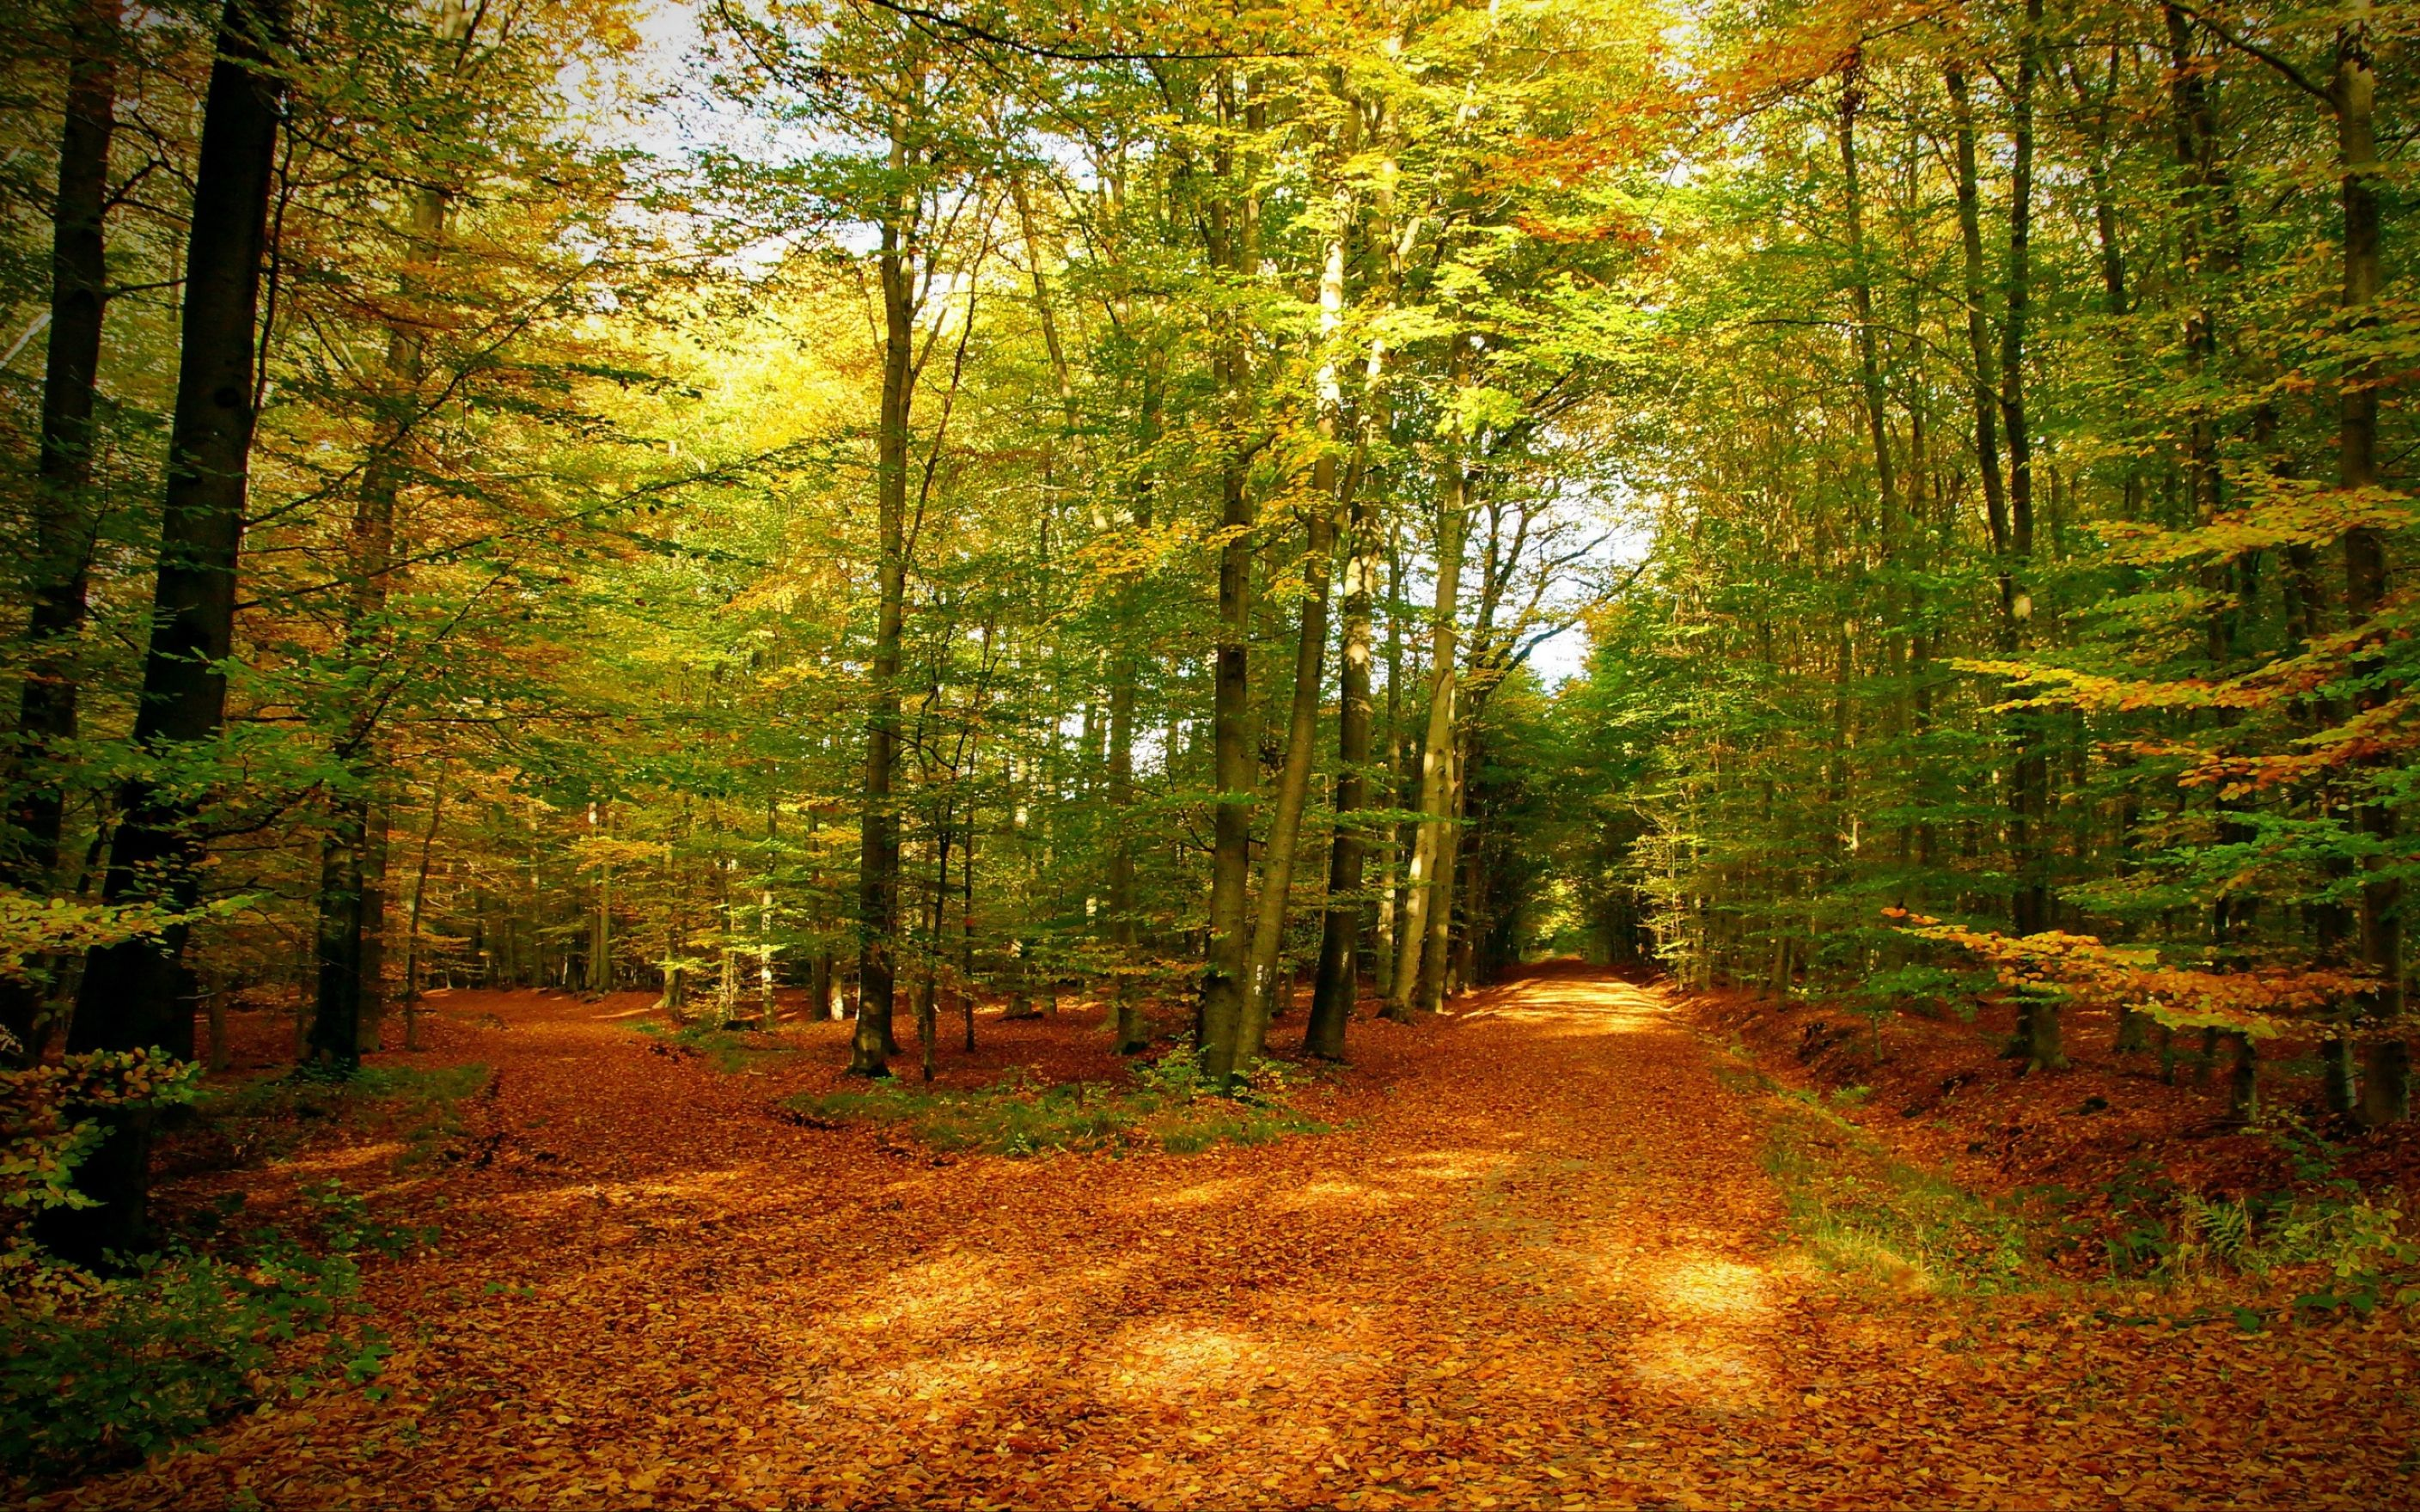 Download free HD Gold Autumn Forest Wallpaper, image